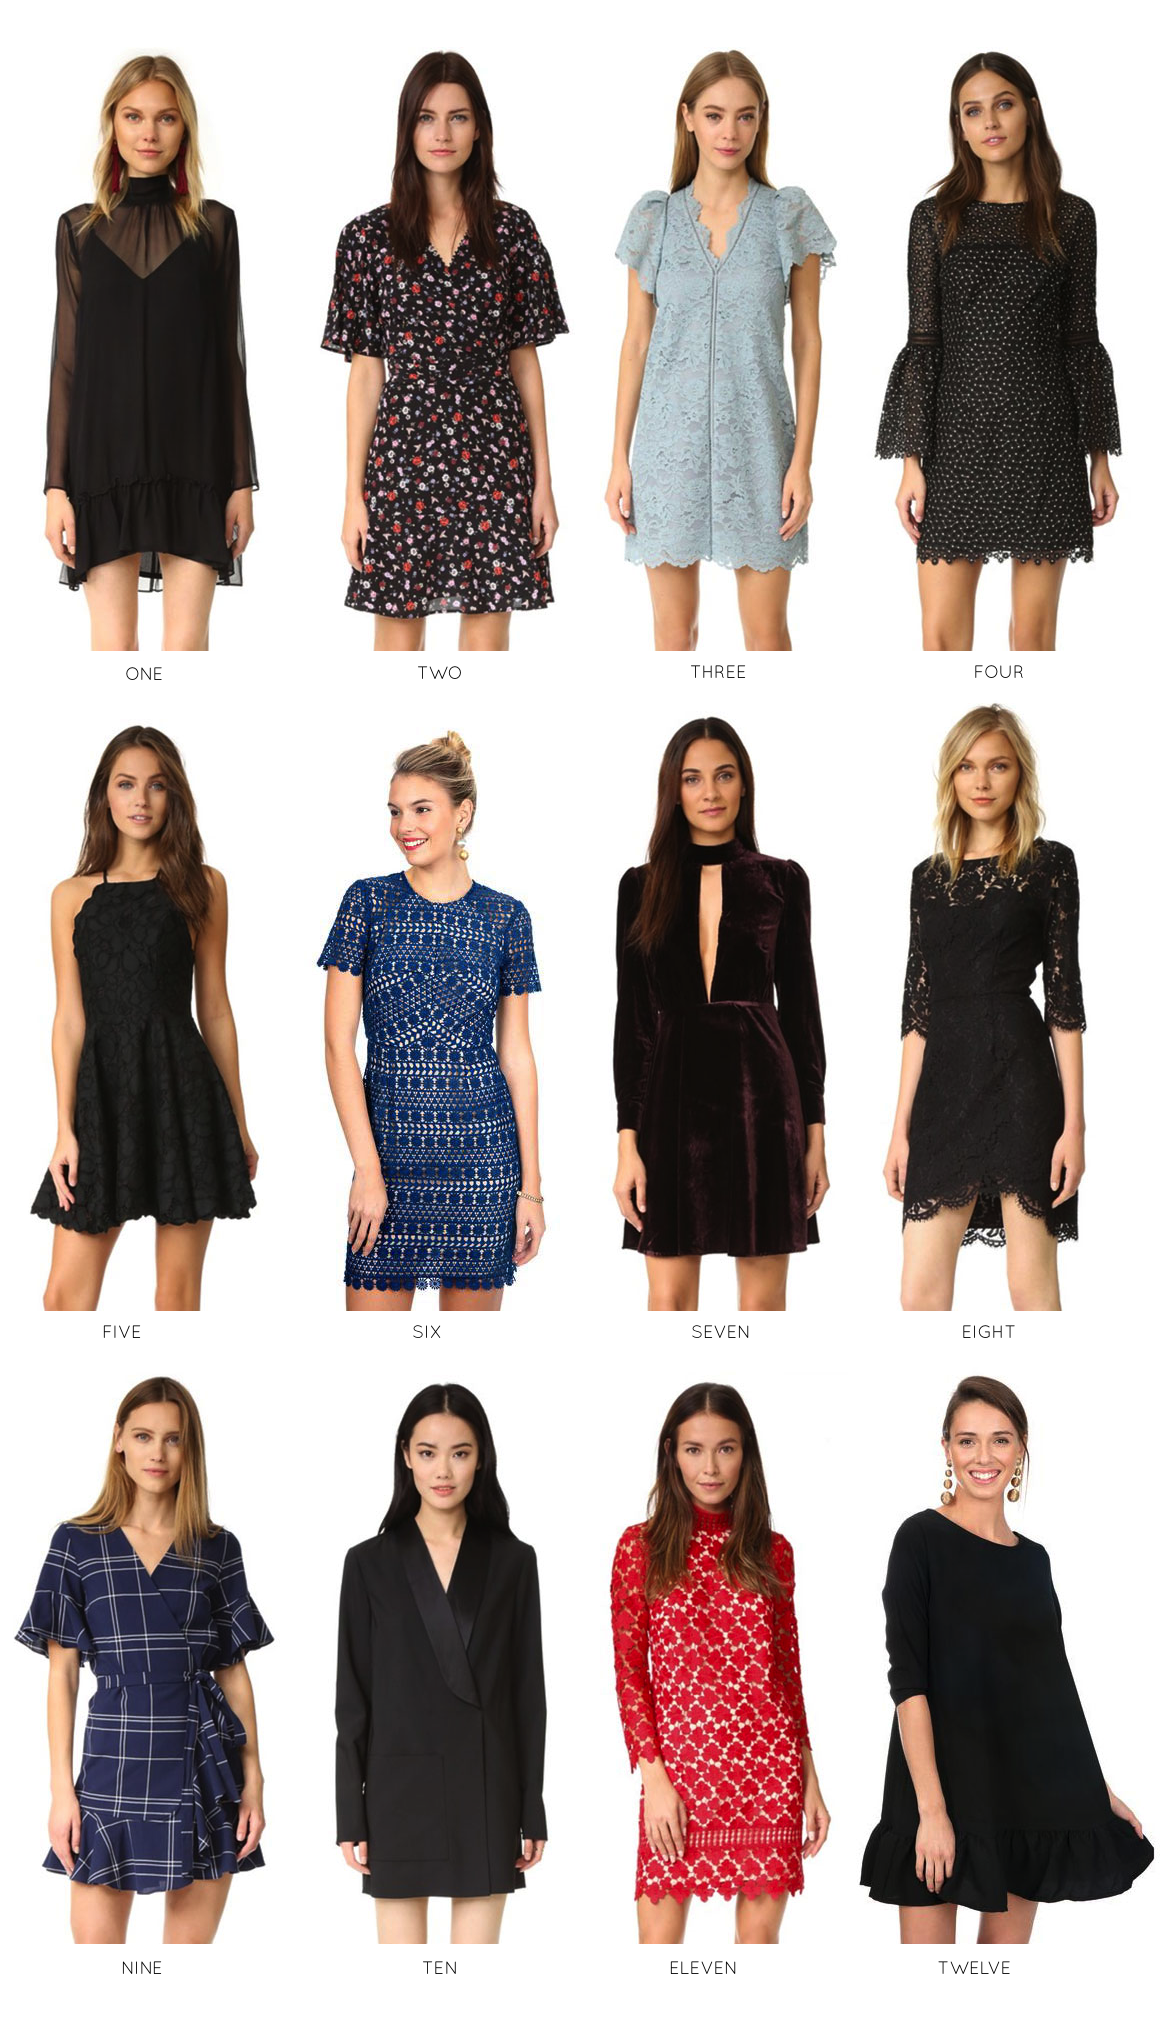 12 Festive Holiday Dresses for Any Occasion. Click through for the details. | glitterinc.com | @glitterinc